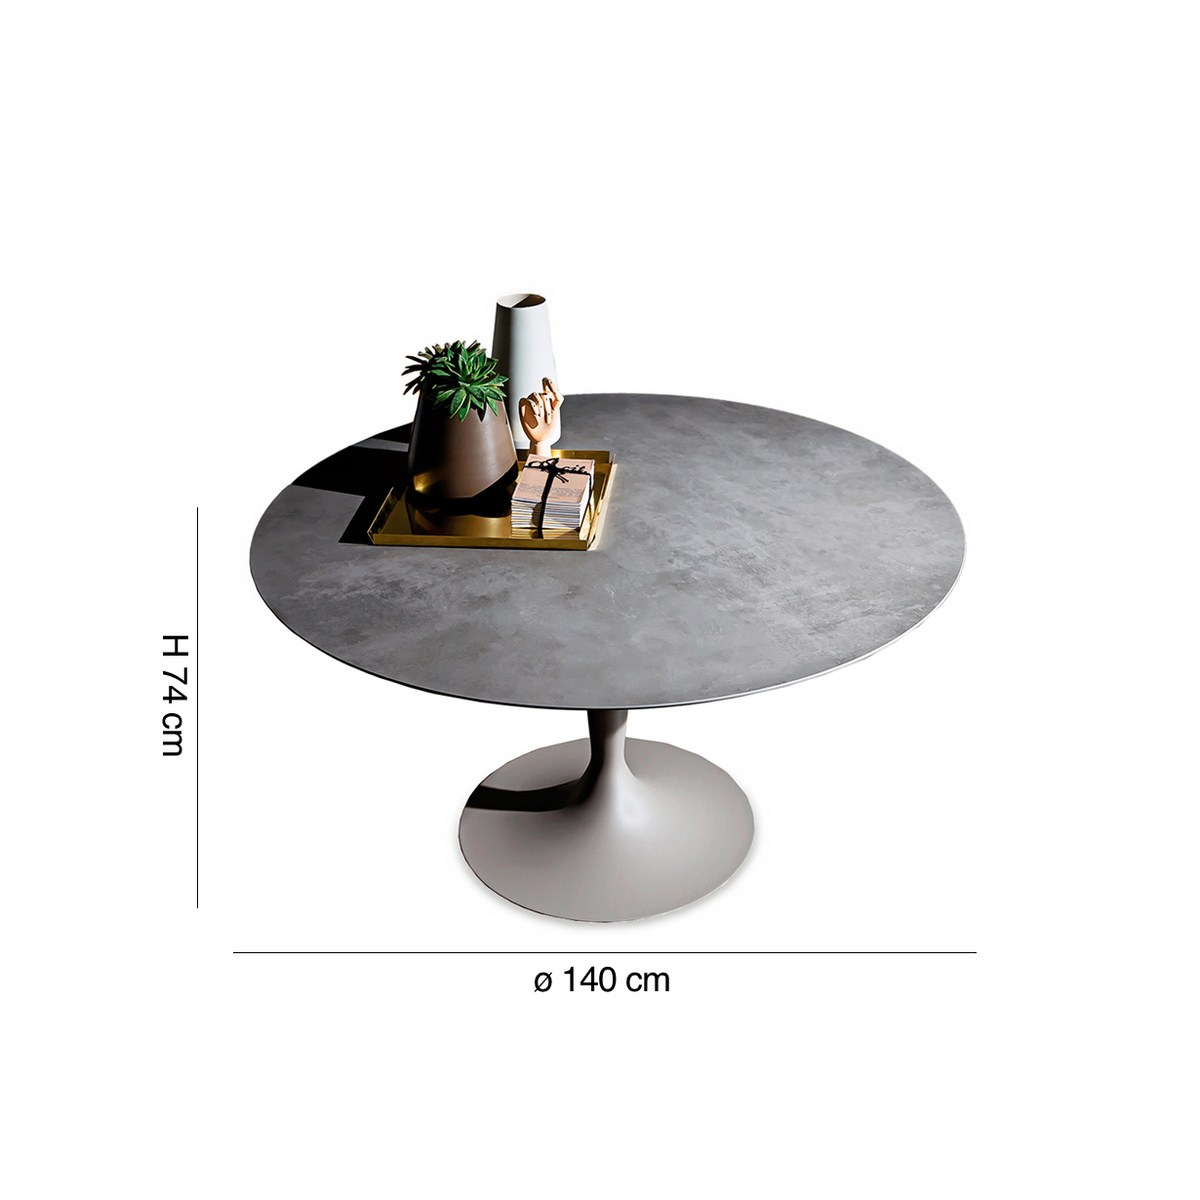 table ronde flute diam 140 cm by sovet italia lovethesign. Black Bedroom Furniture Sets. Home Design Ideas